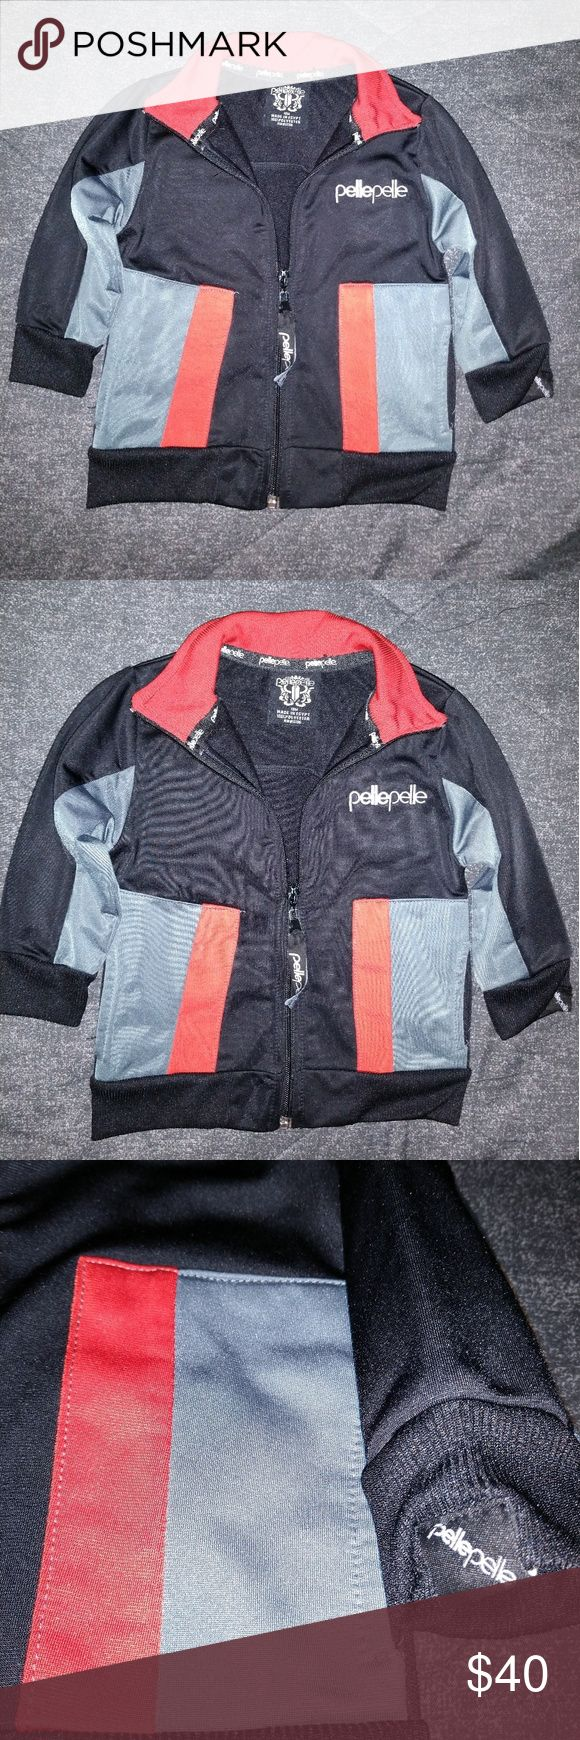 Pelle Pelle Jacket Toddler Jacket by Pelle Pelle  Color black red and grey Made in Egypt  100% polyester LP 1475 - 11493 7 Machine wash cold with like colors tumble dry low Do not bleach Size 18 months Perfect condition no wear and tear brand new with no tags Pelle Pelle Jackets & Coats